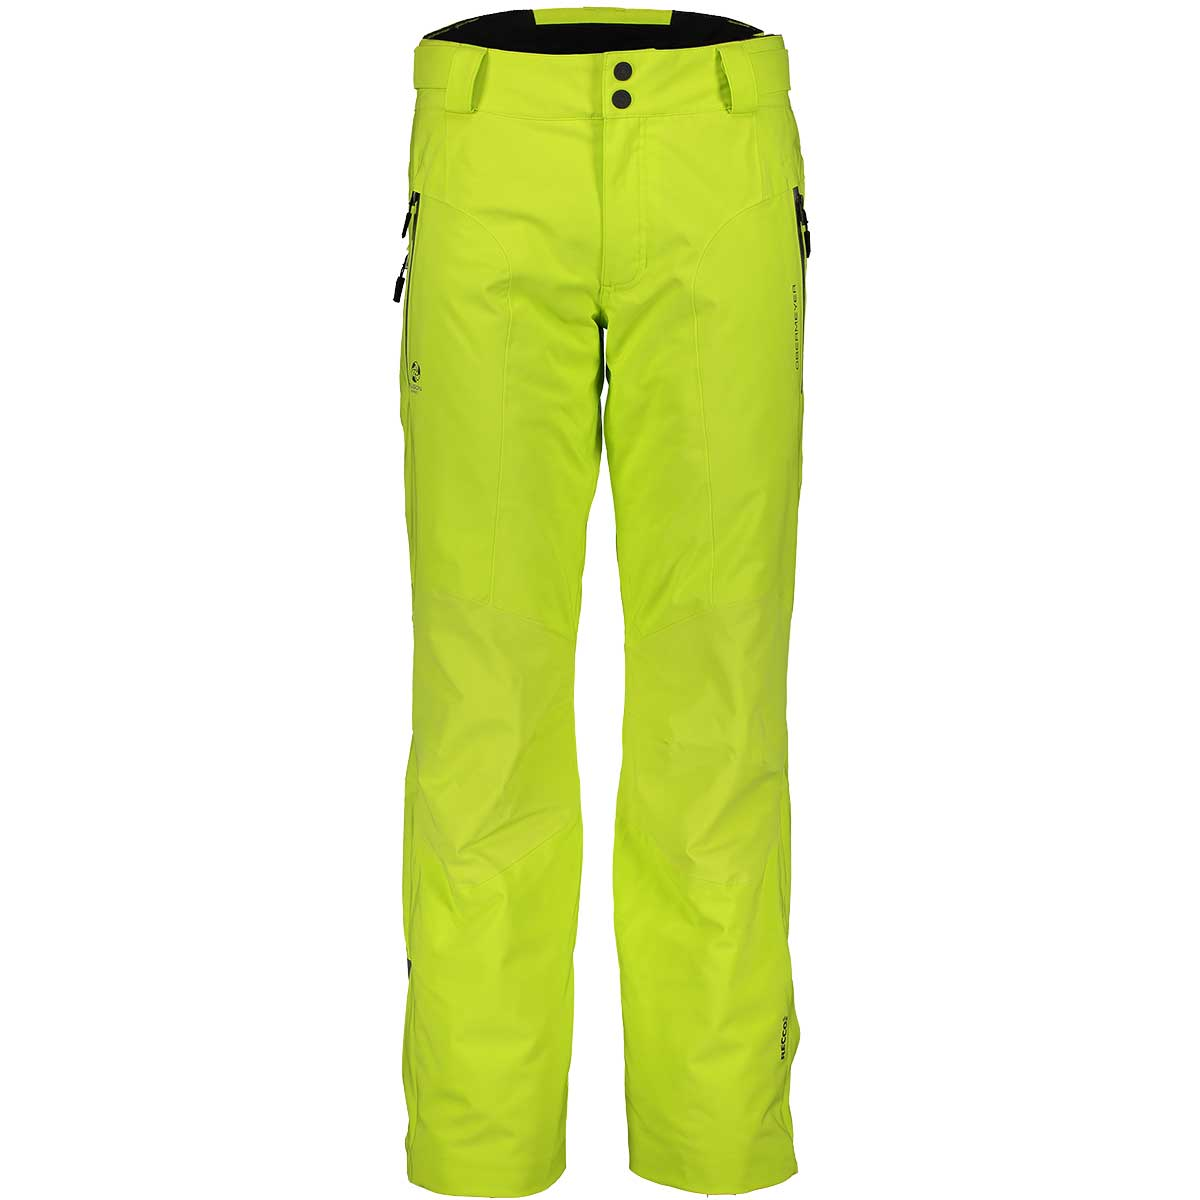 Obermeyer men's Process Pant in Limelight front view